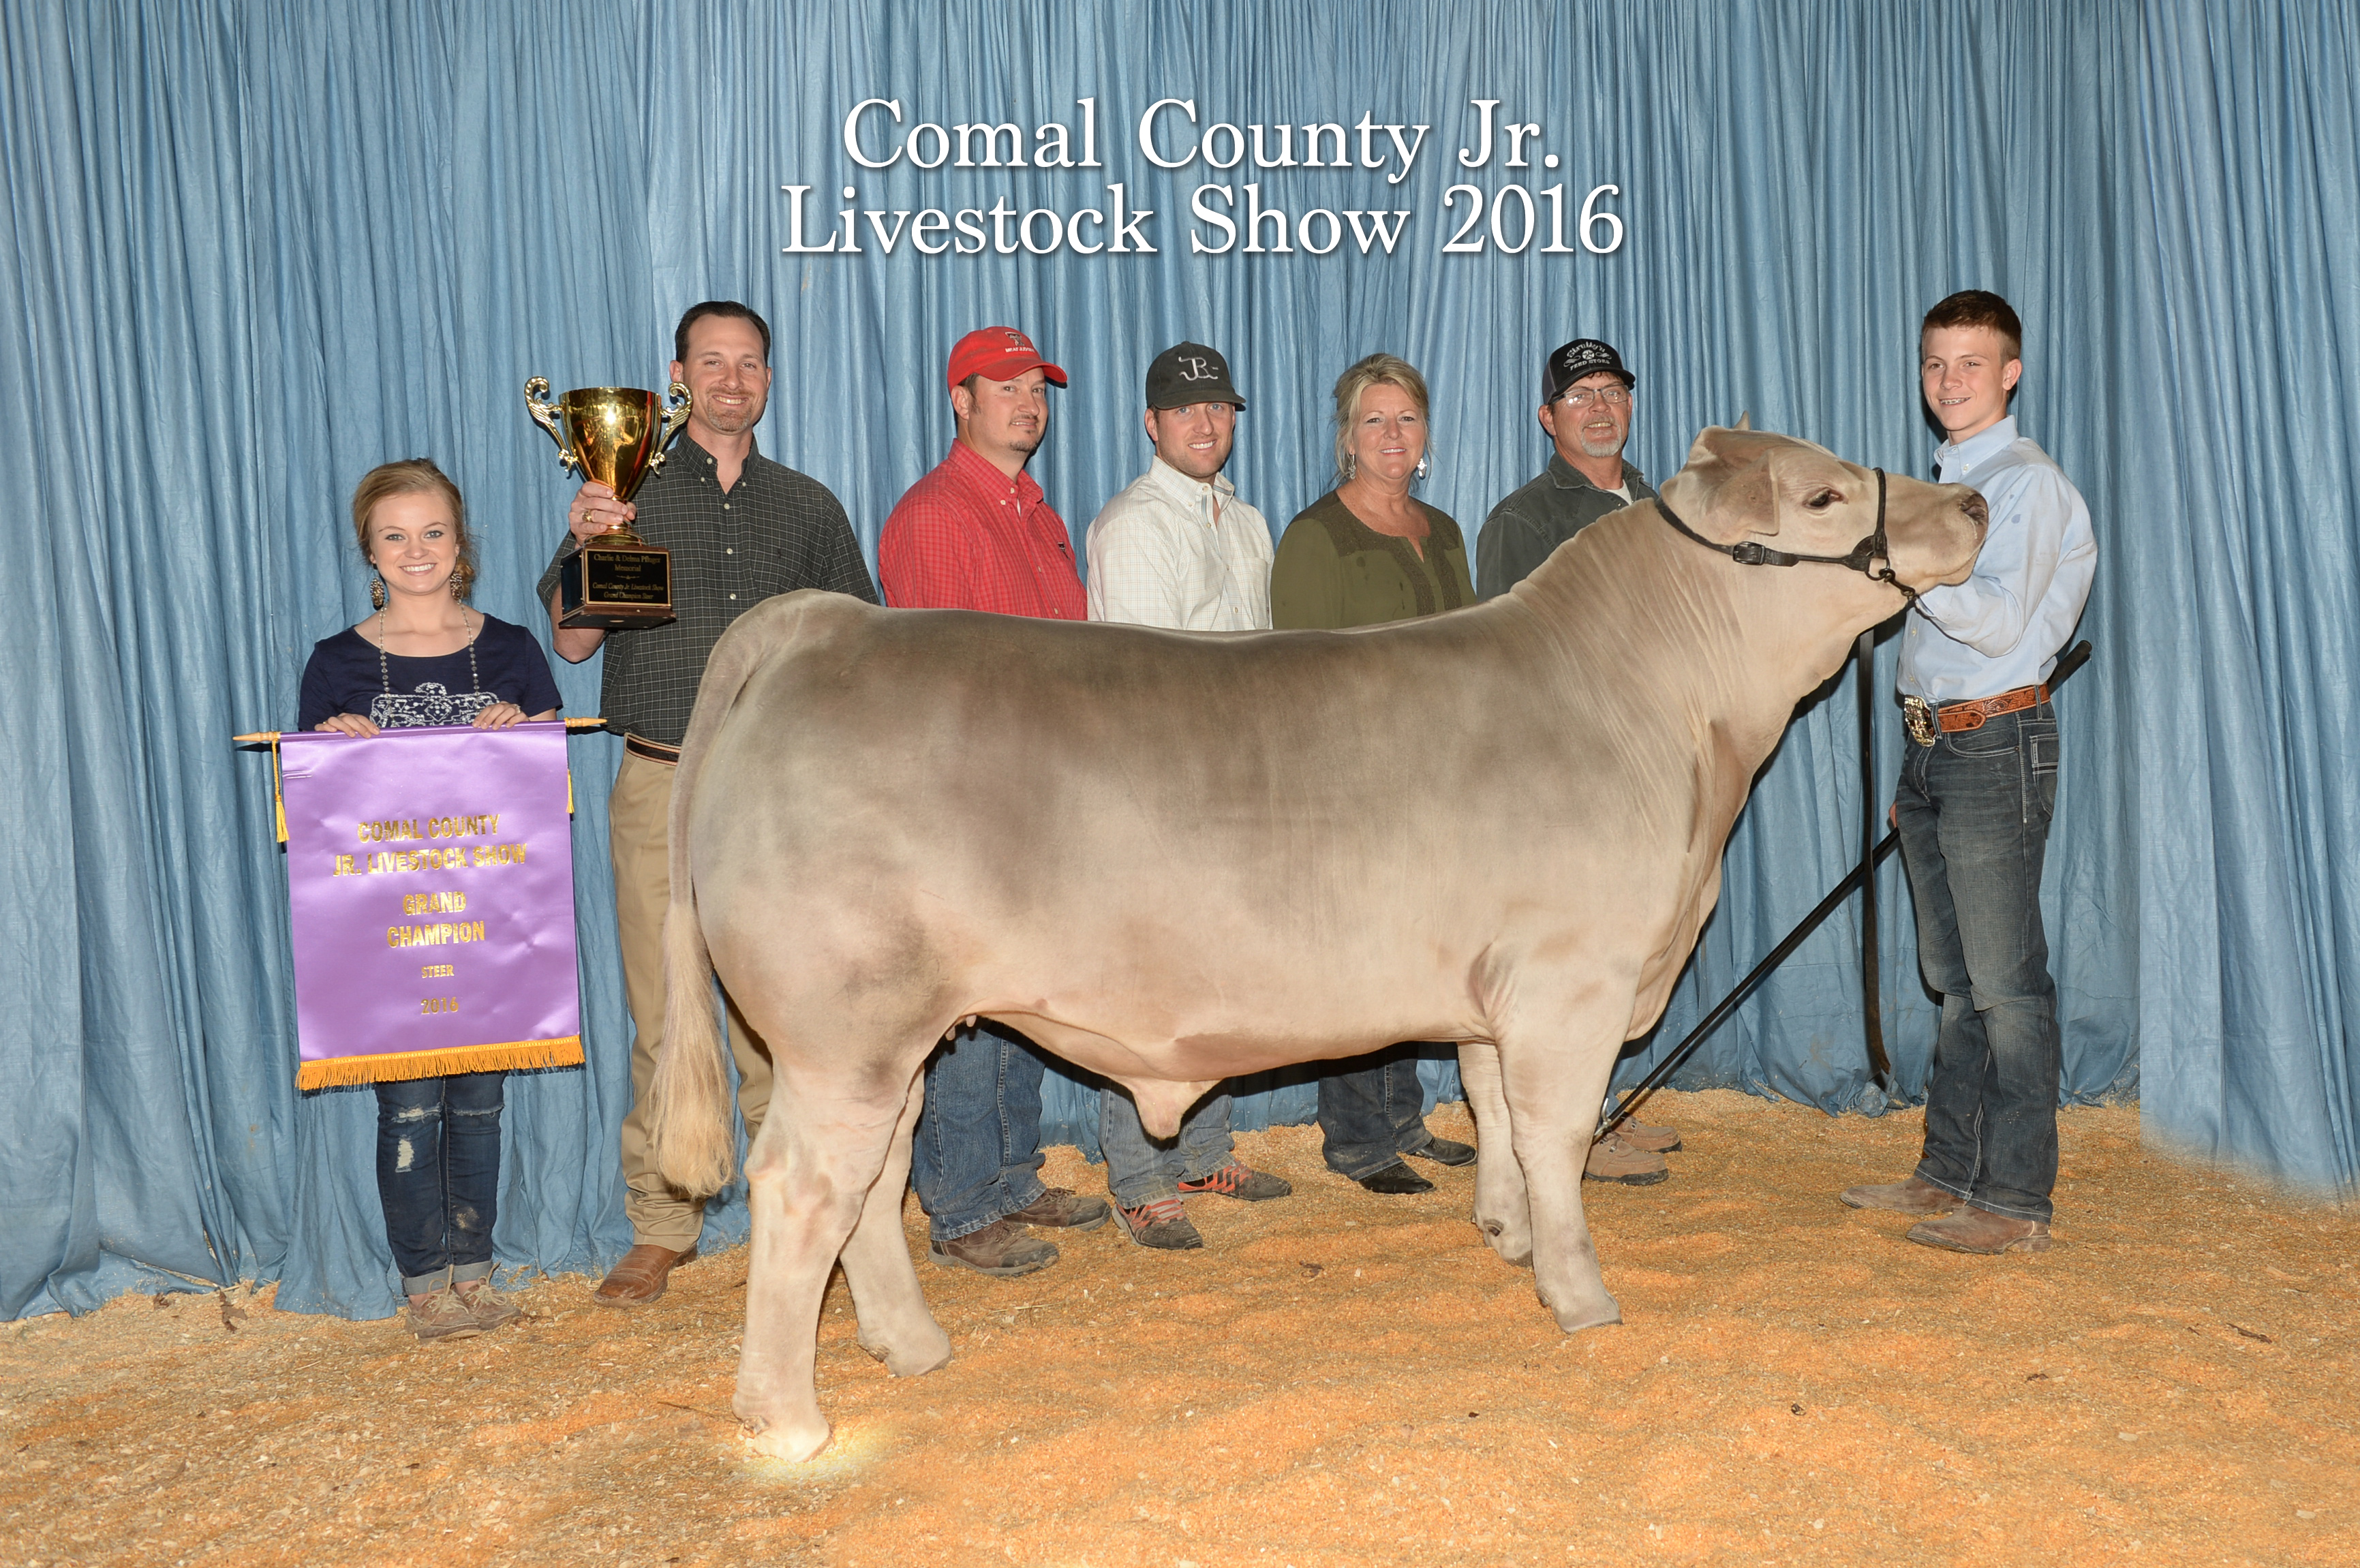 Grand Champion Steer Comal County